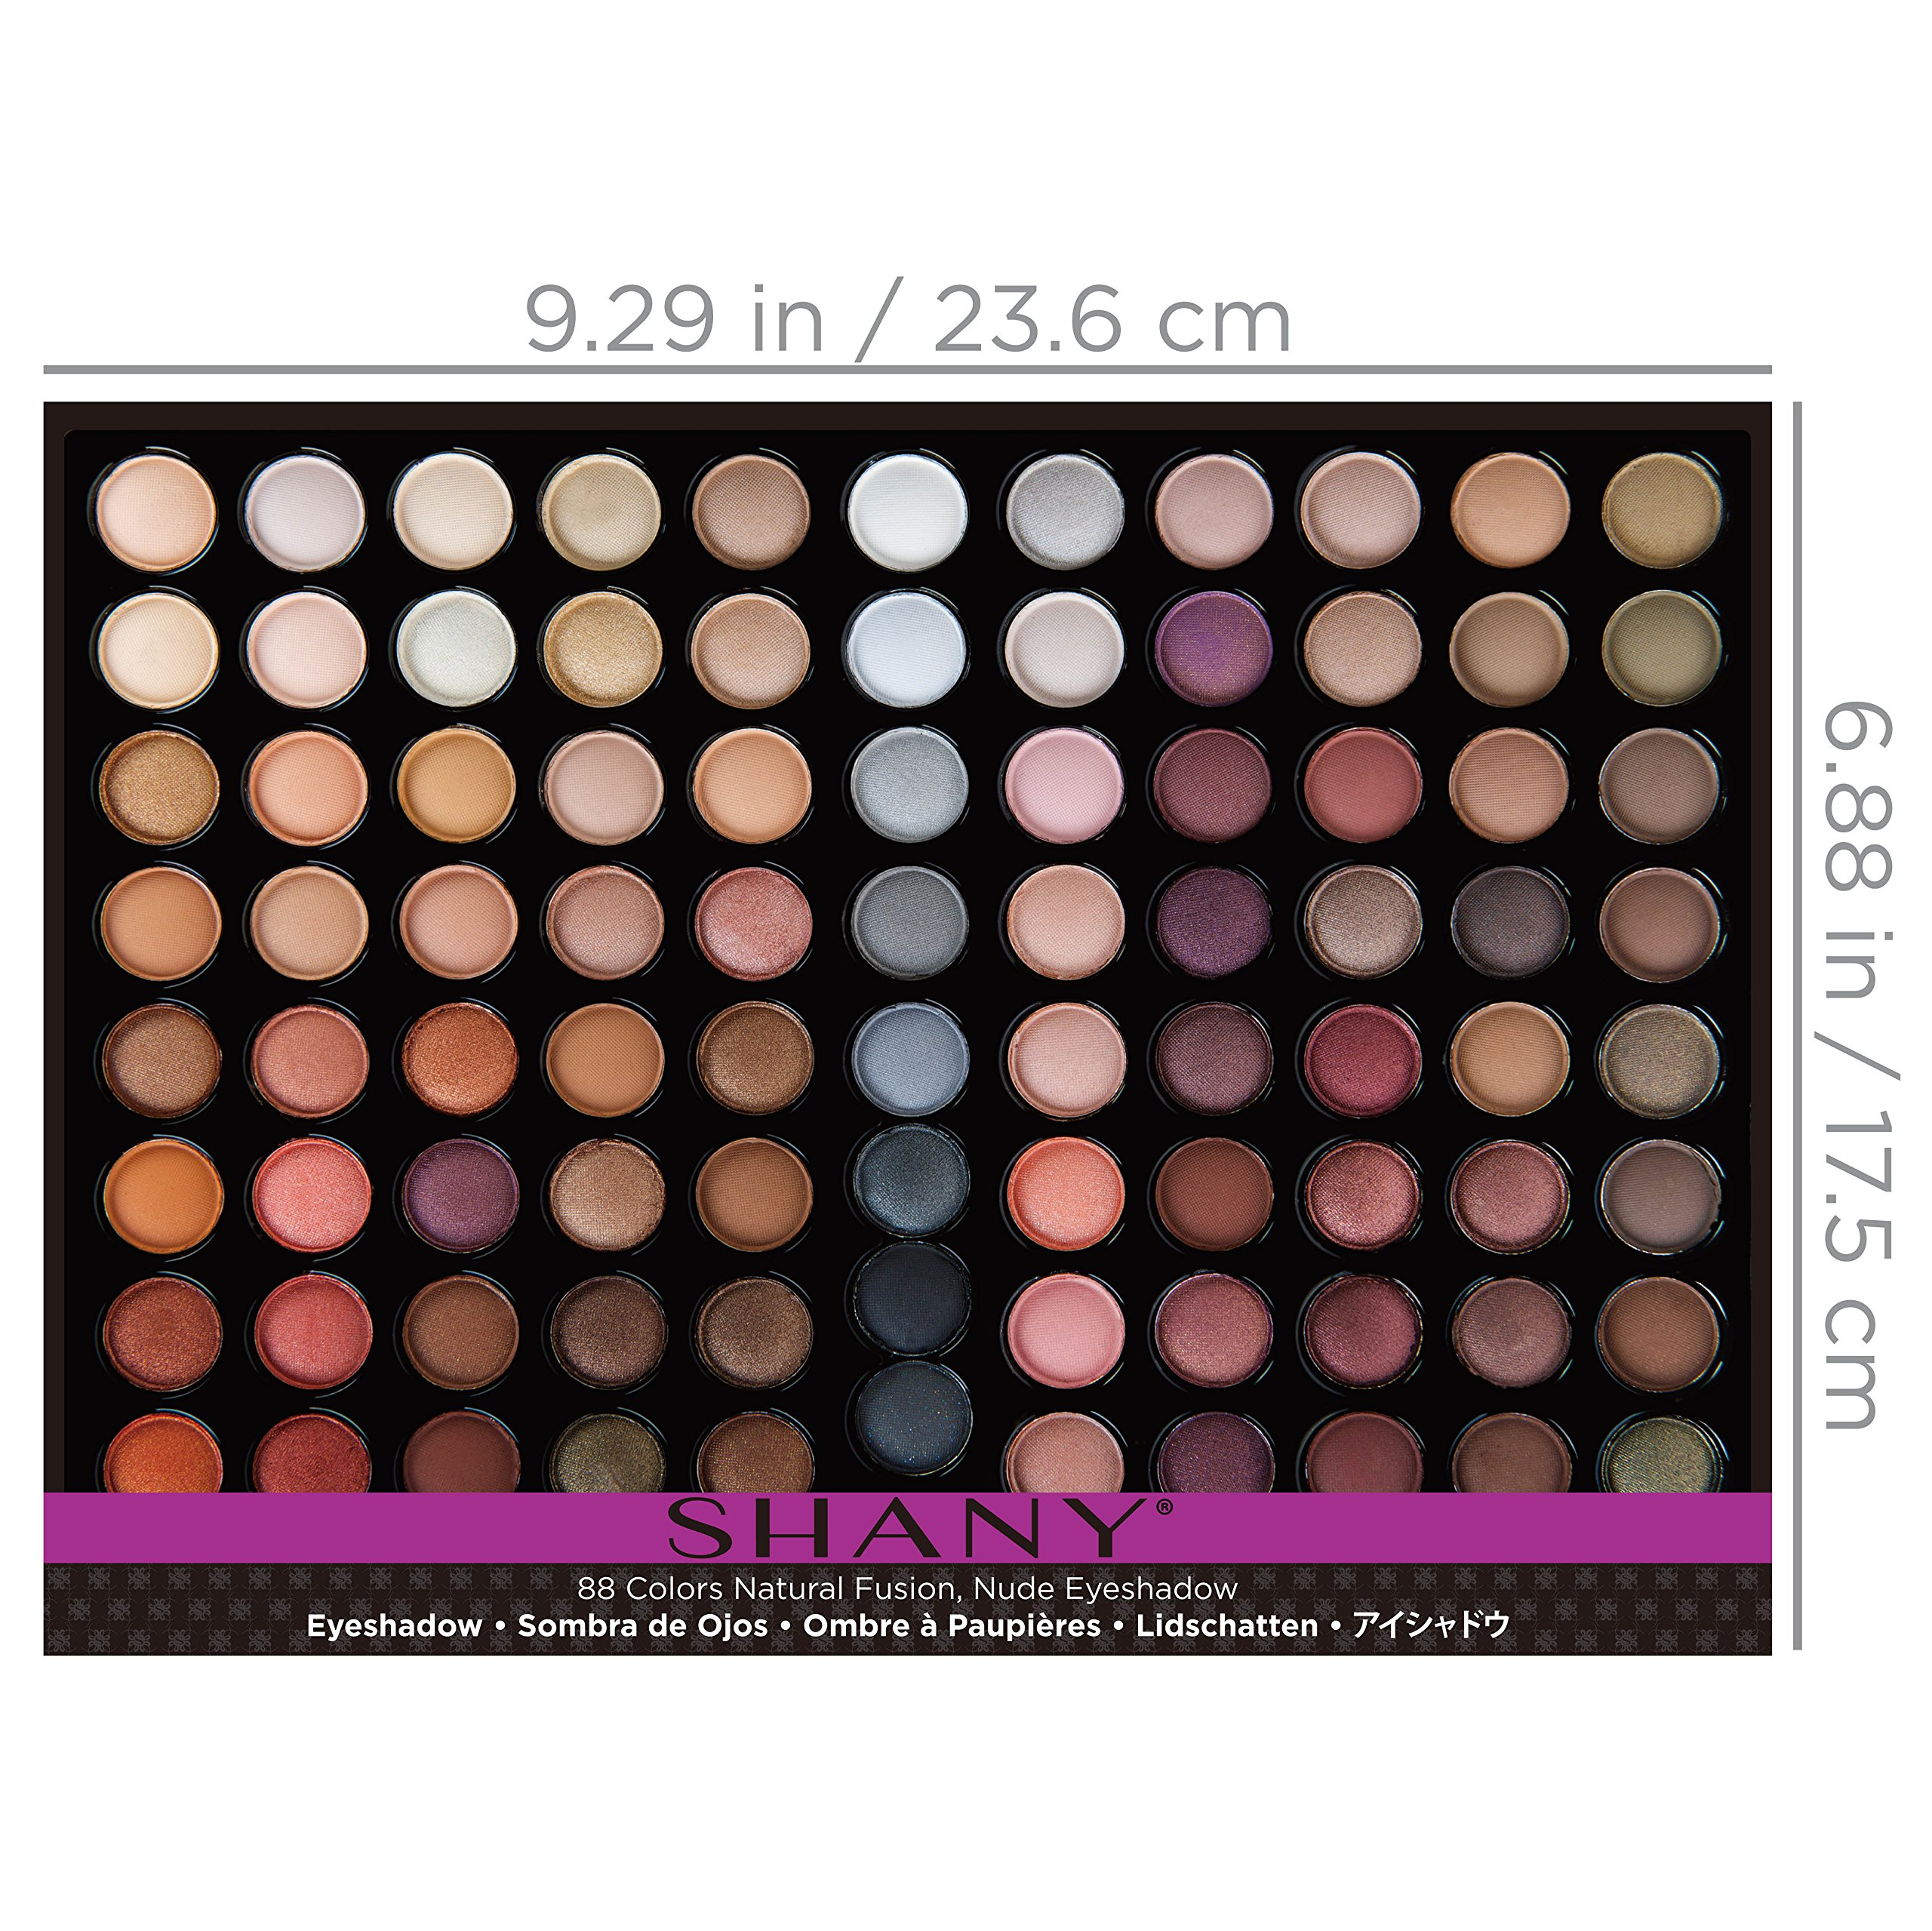 SHANY Natural Fusion Eyeshadow Palette (88 Color Eyeshadow Palette, Nude Palette), 2.15 Ounce by SHANY Cosmetics (Image #5)